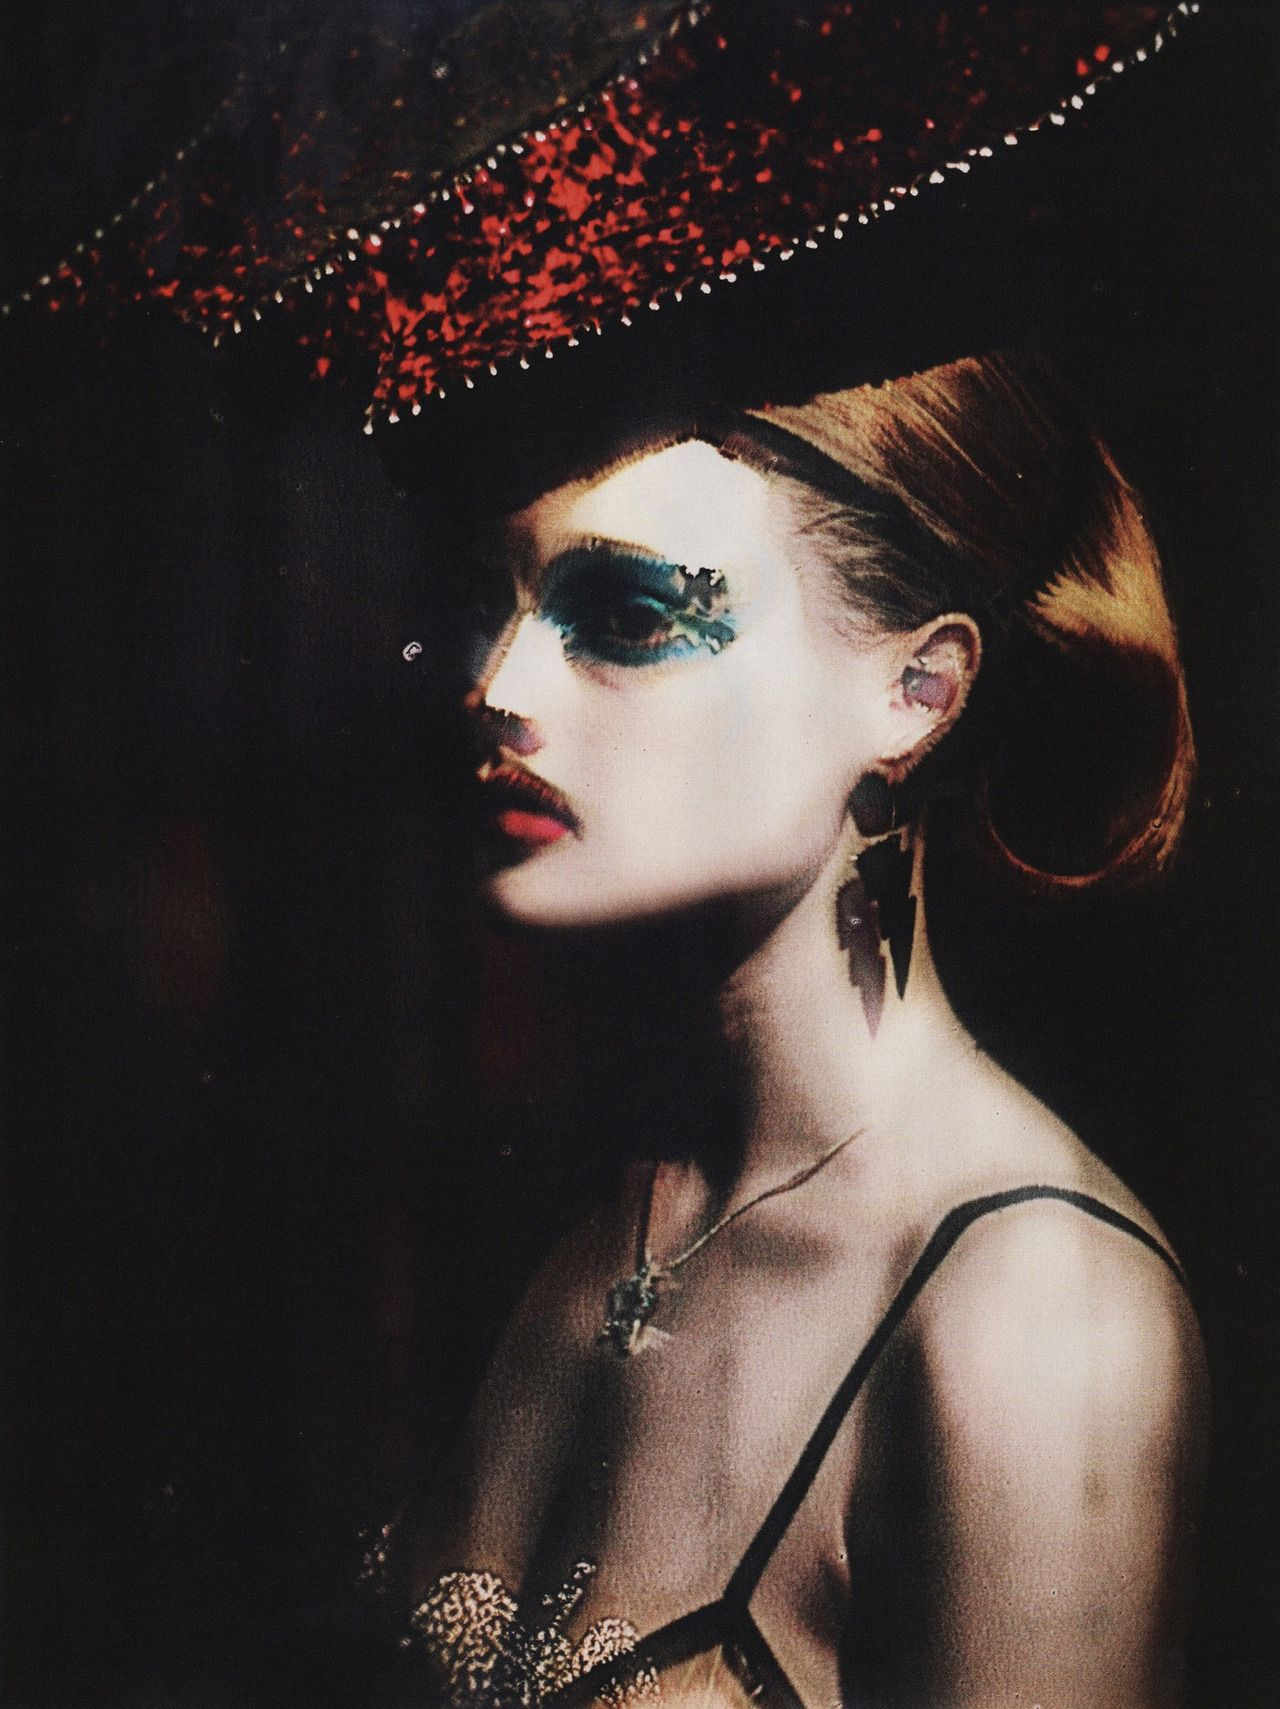 Guinevere Van Seenus by Paolo Roversi for Vogue UK June 2009